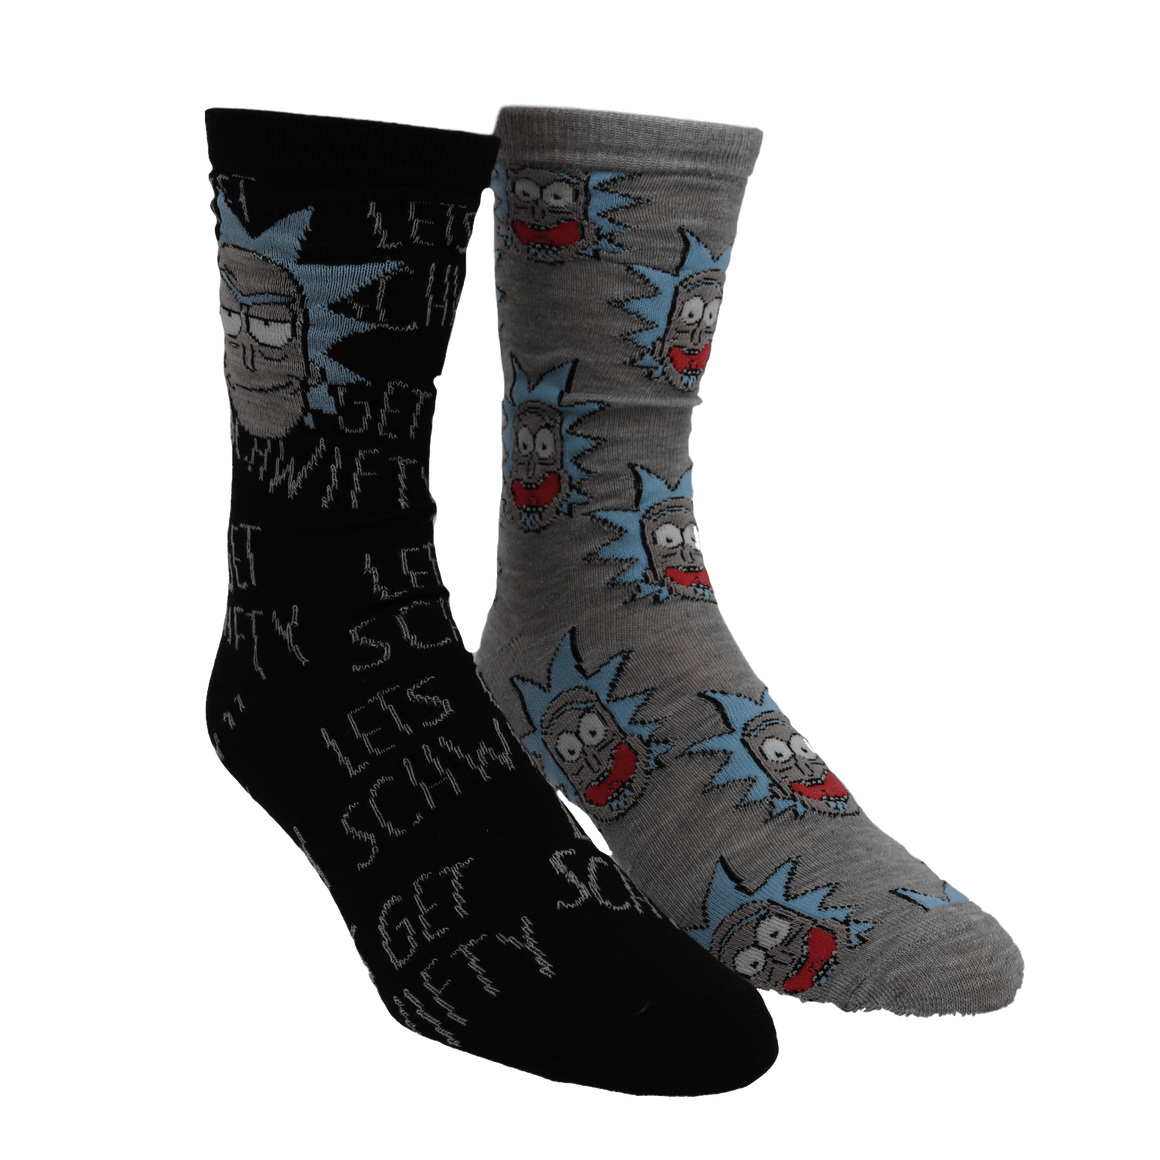 2 Pair Pack Rick and Morty Socks - The Sock Spot